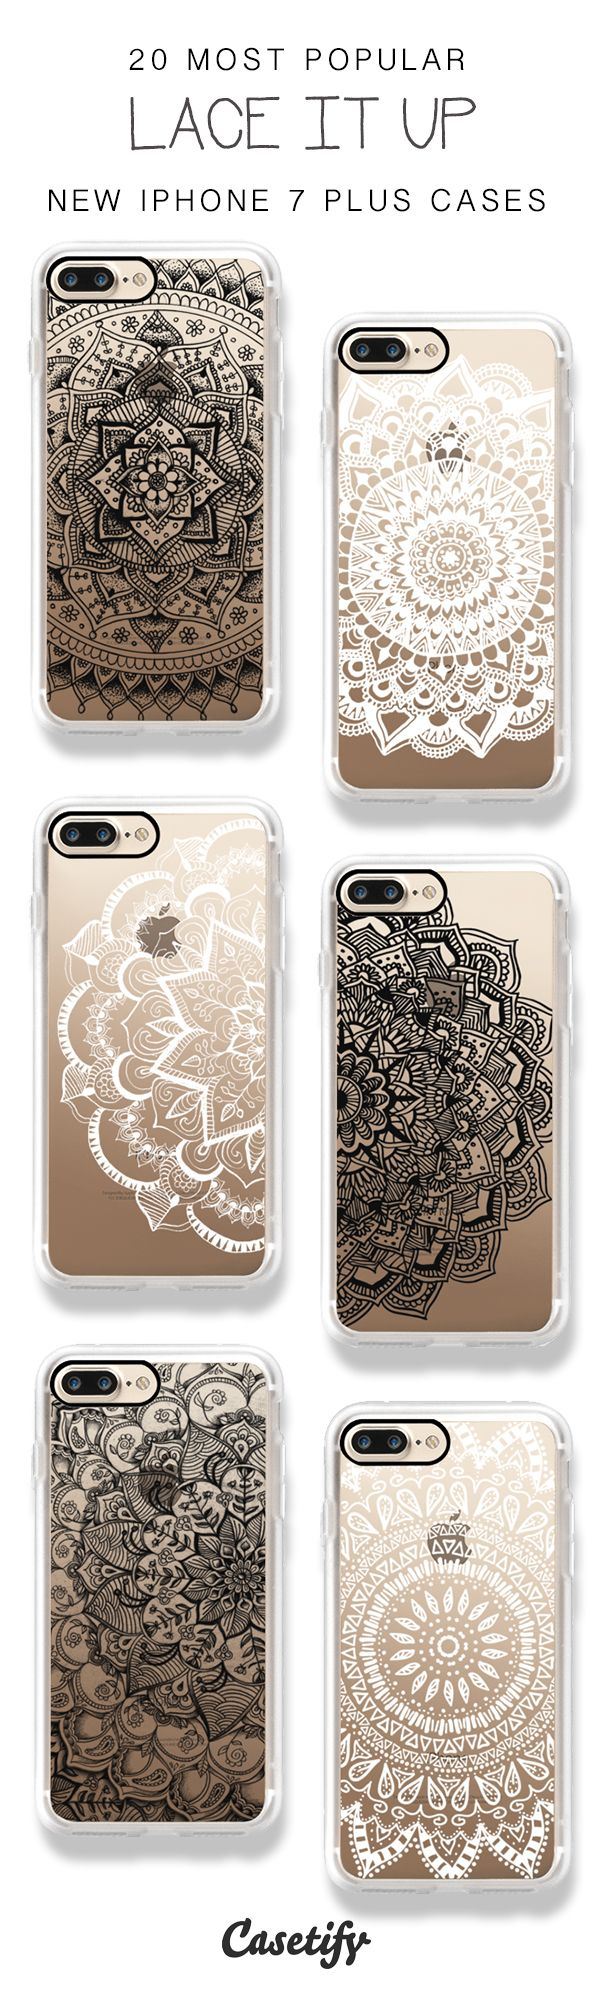 Girls, lace it up! 20 Most Popular iPhone 7 / iPhone 7 Plus Phone Cases here > https://www.casetify.com/artworks/gIn5OzKWpq